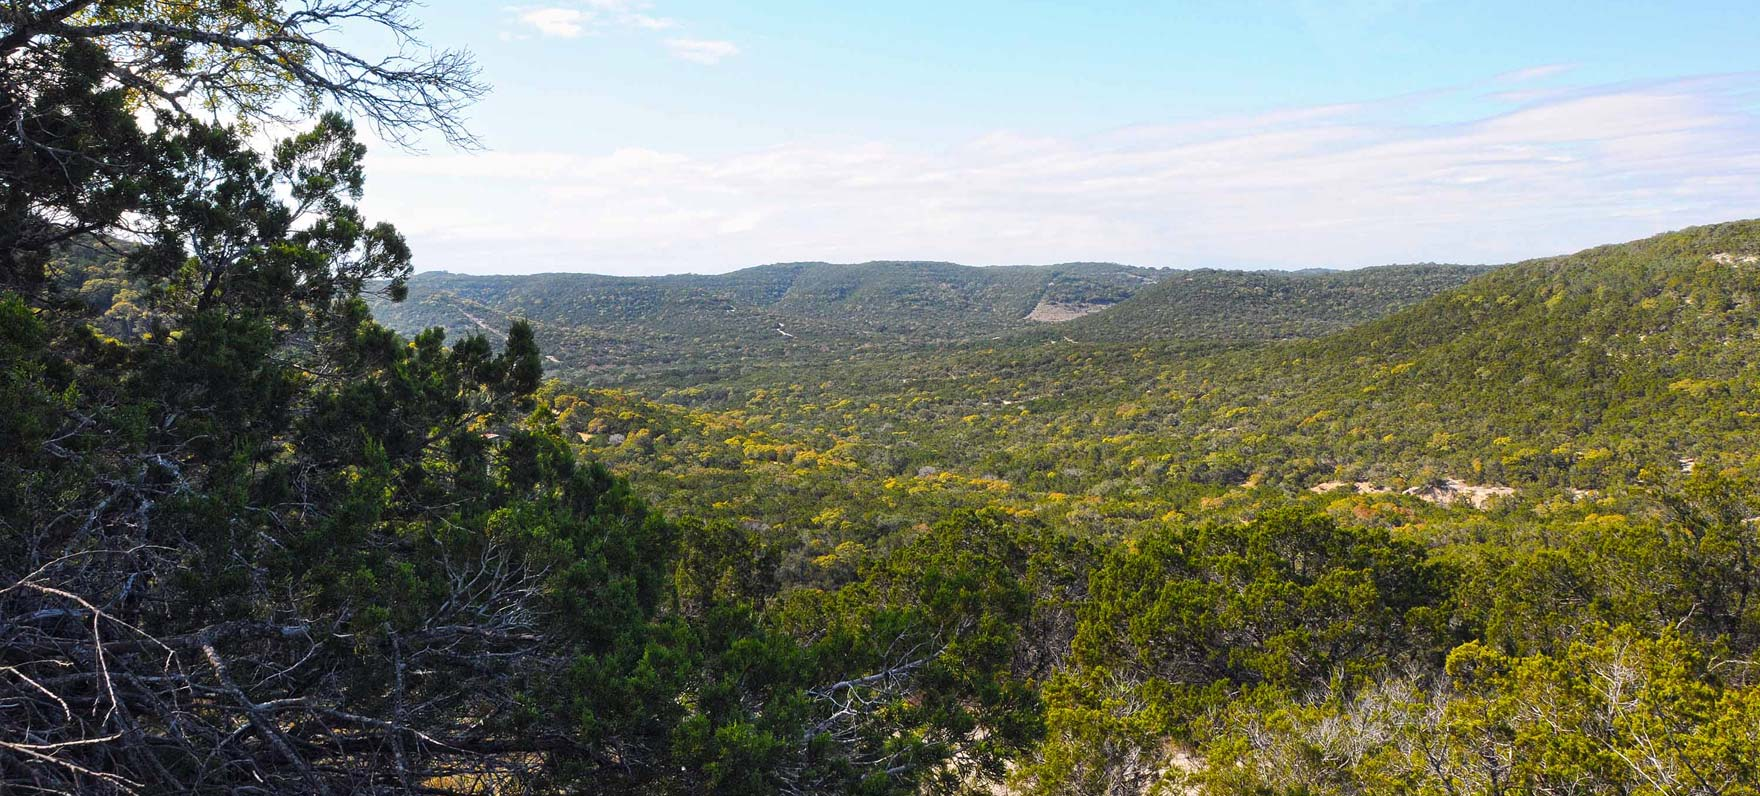 Overlooking the hills at Albert & Bessie Kronkosky State Natural Area. This park is not yet open.